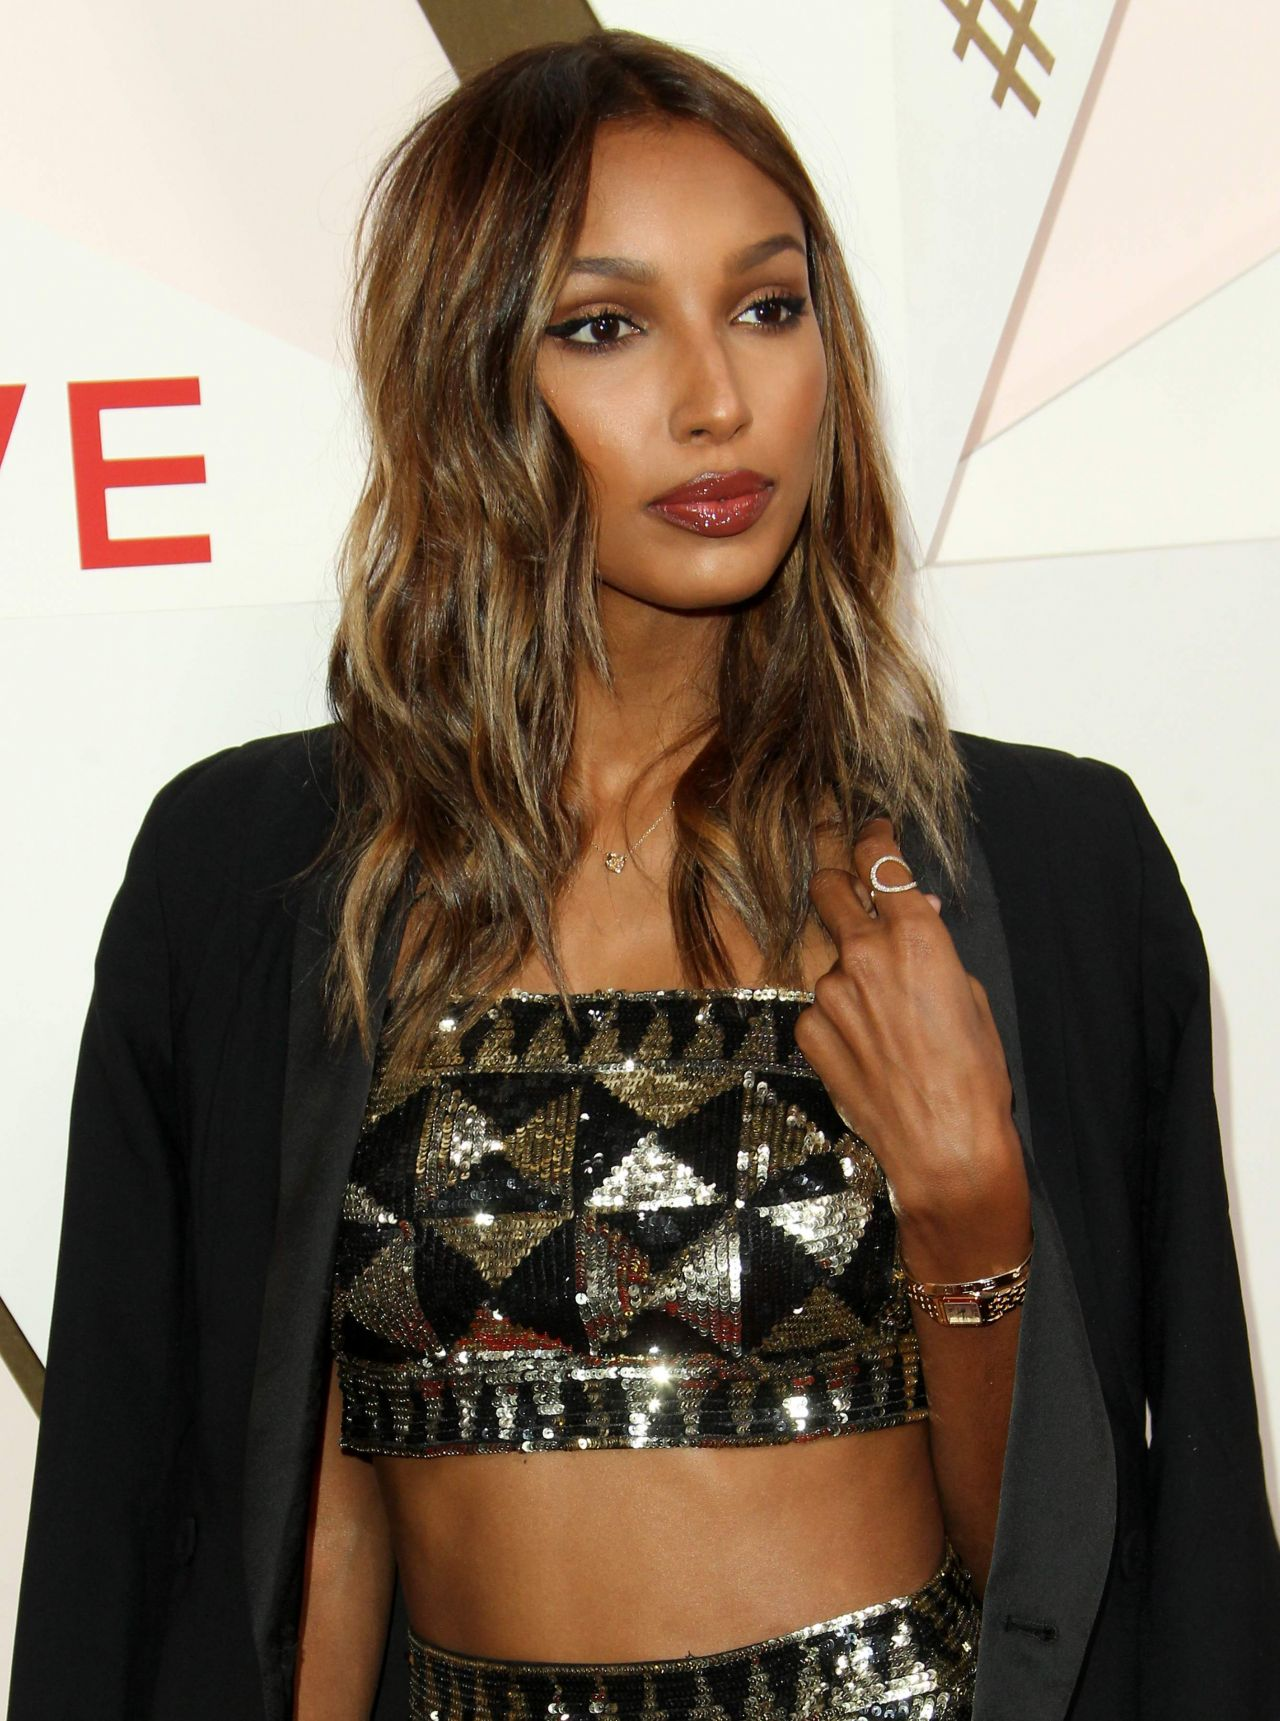 Jasmine Tookes Revolveawards 2017 In Hollywood